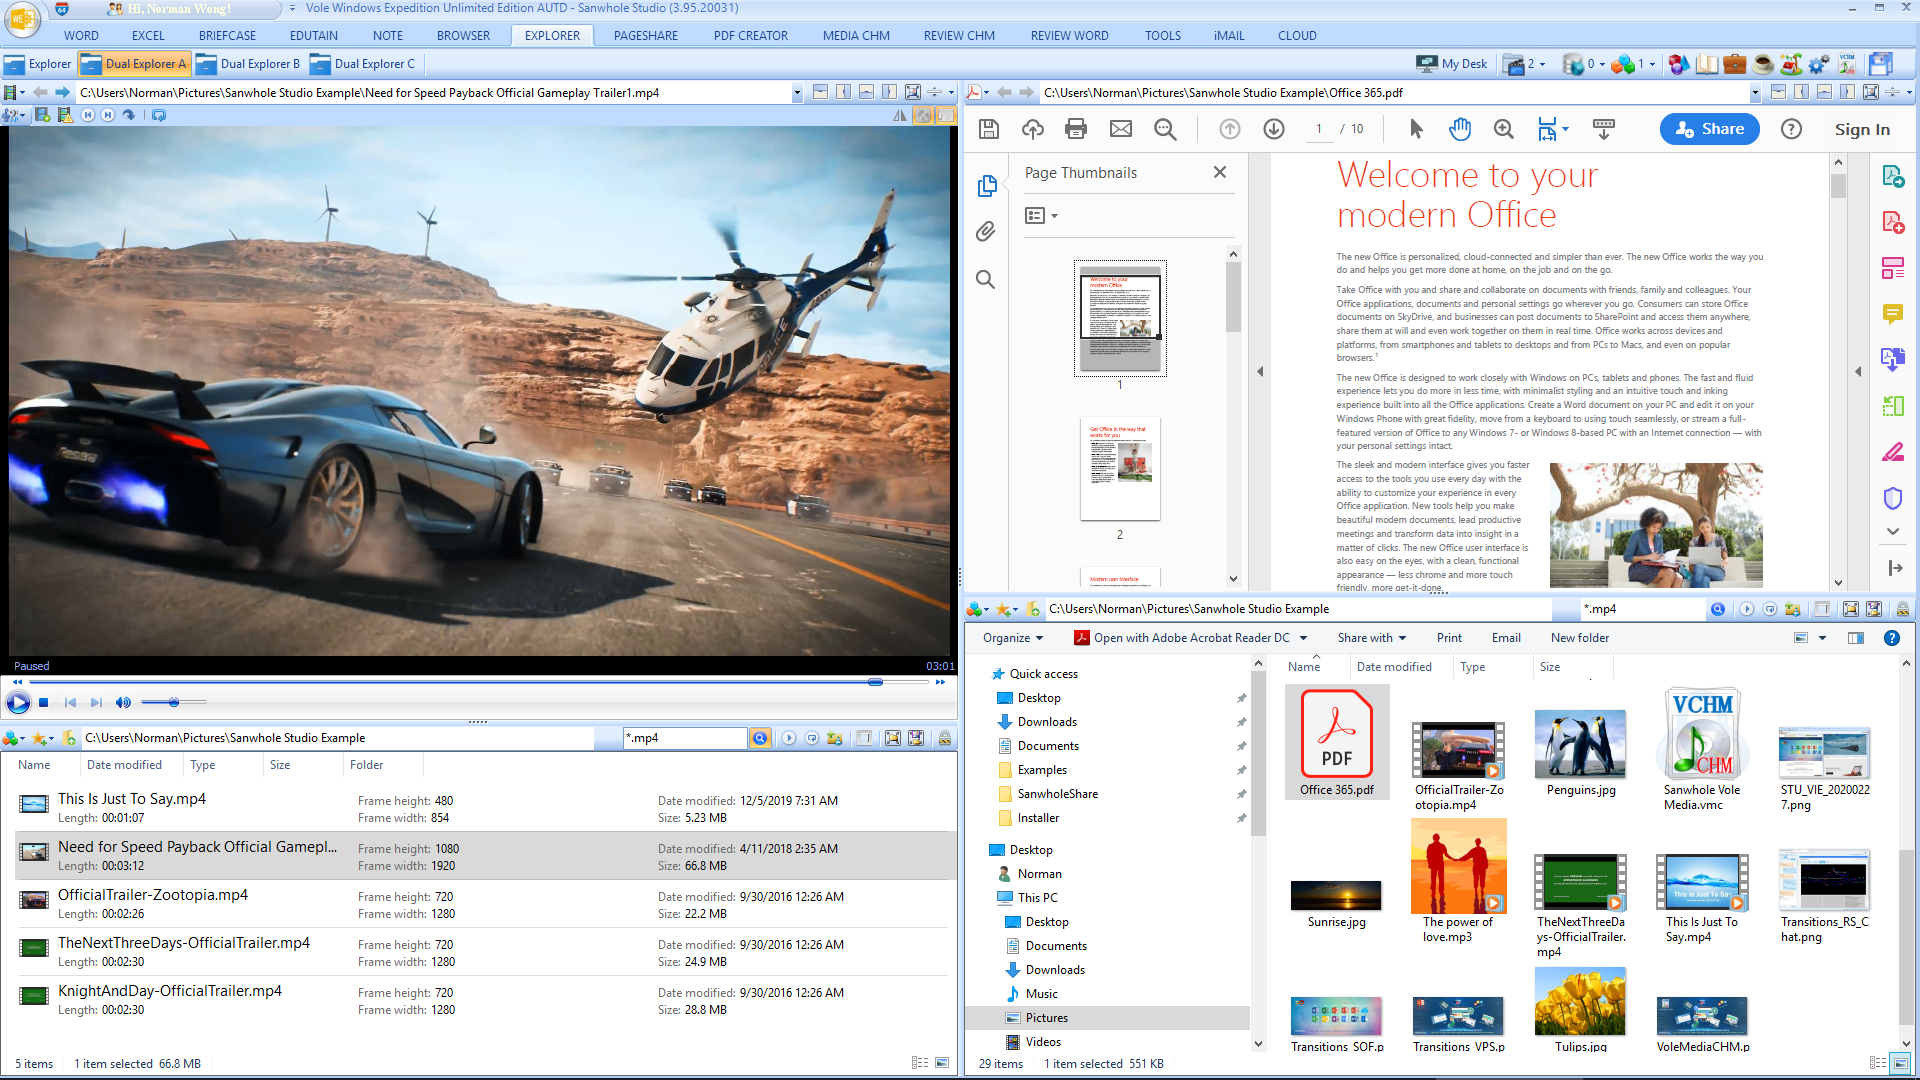 Vole Windows Expedition Ultimate Edition, Software Utilities Screenshot